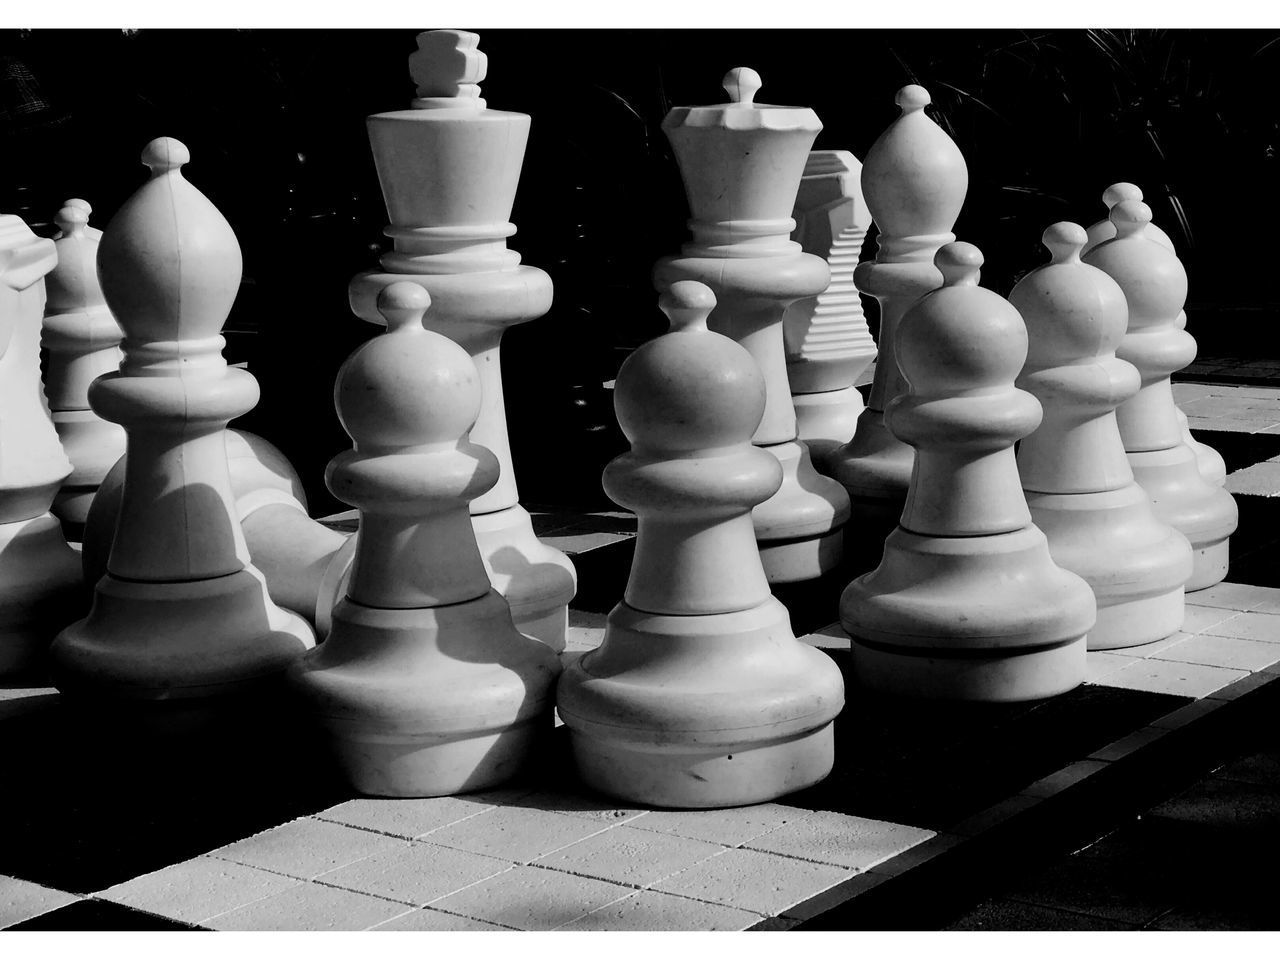 chess, strategy, chess piece, leisure games, chess board, king - chess piece, knight - chess piece, skill, still life, pawn - chess piece, competition, queen - chess piece, checked pattern, challenge, close-up, no people, indoors, intelligence, day